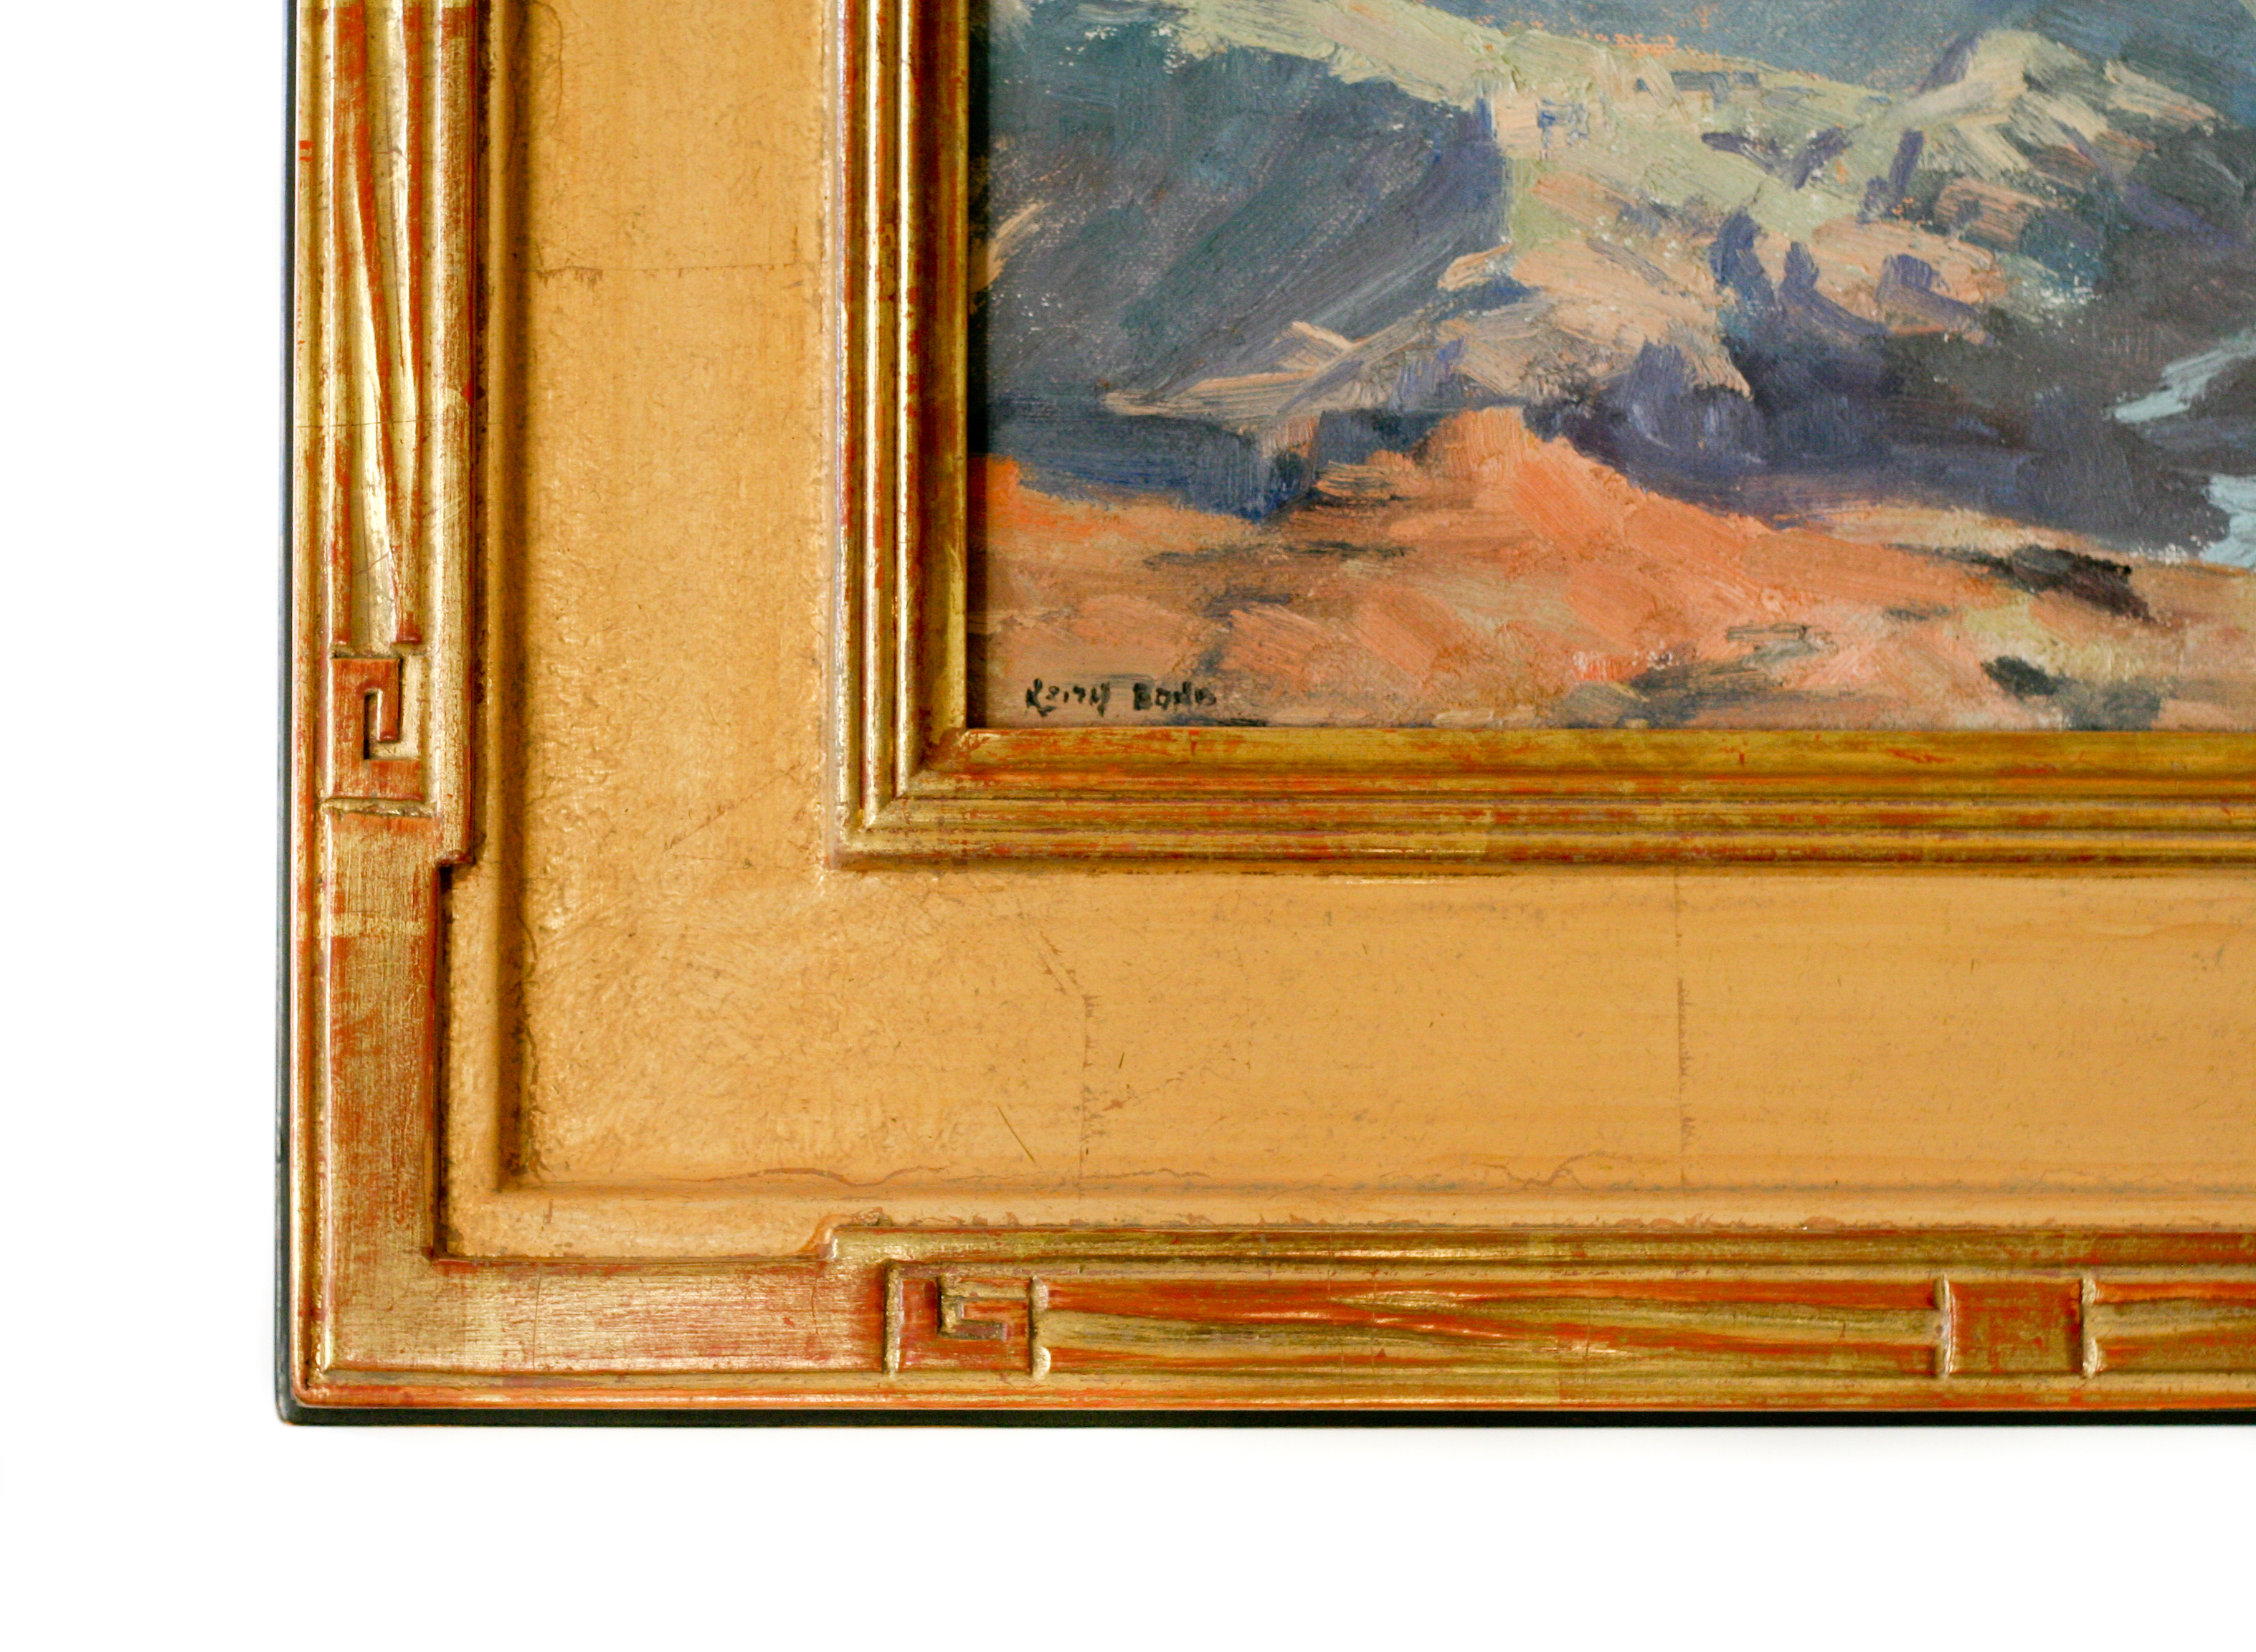 Arts crafts flat panel bryan smith frames arts crafts flat panel 22k taos carve jeuxipadfo Image collections